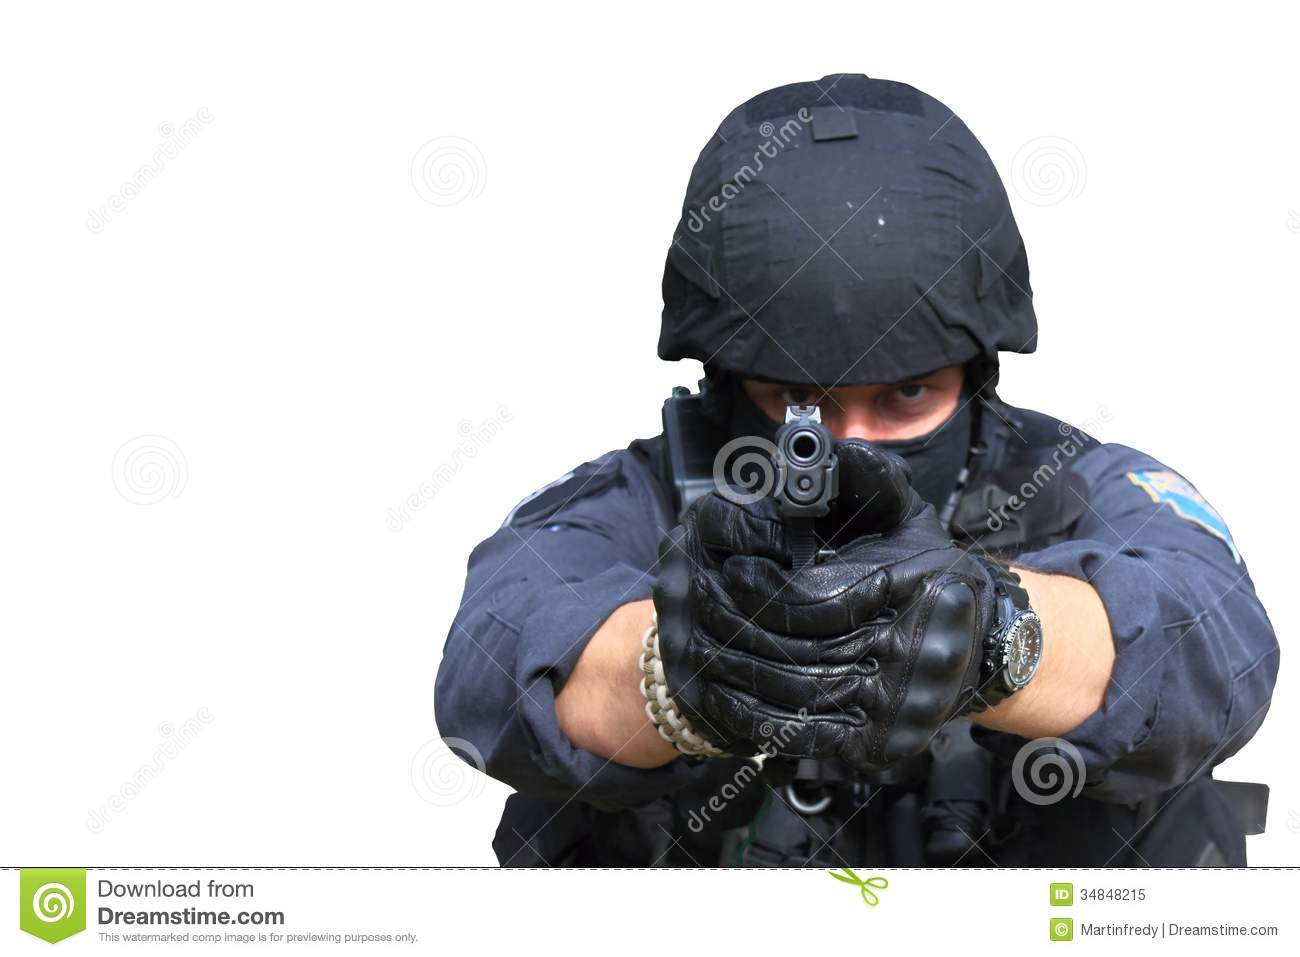 Swat police officer pointing a gun at the camera, isolated on white